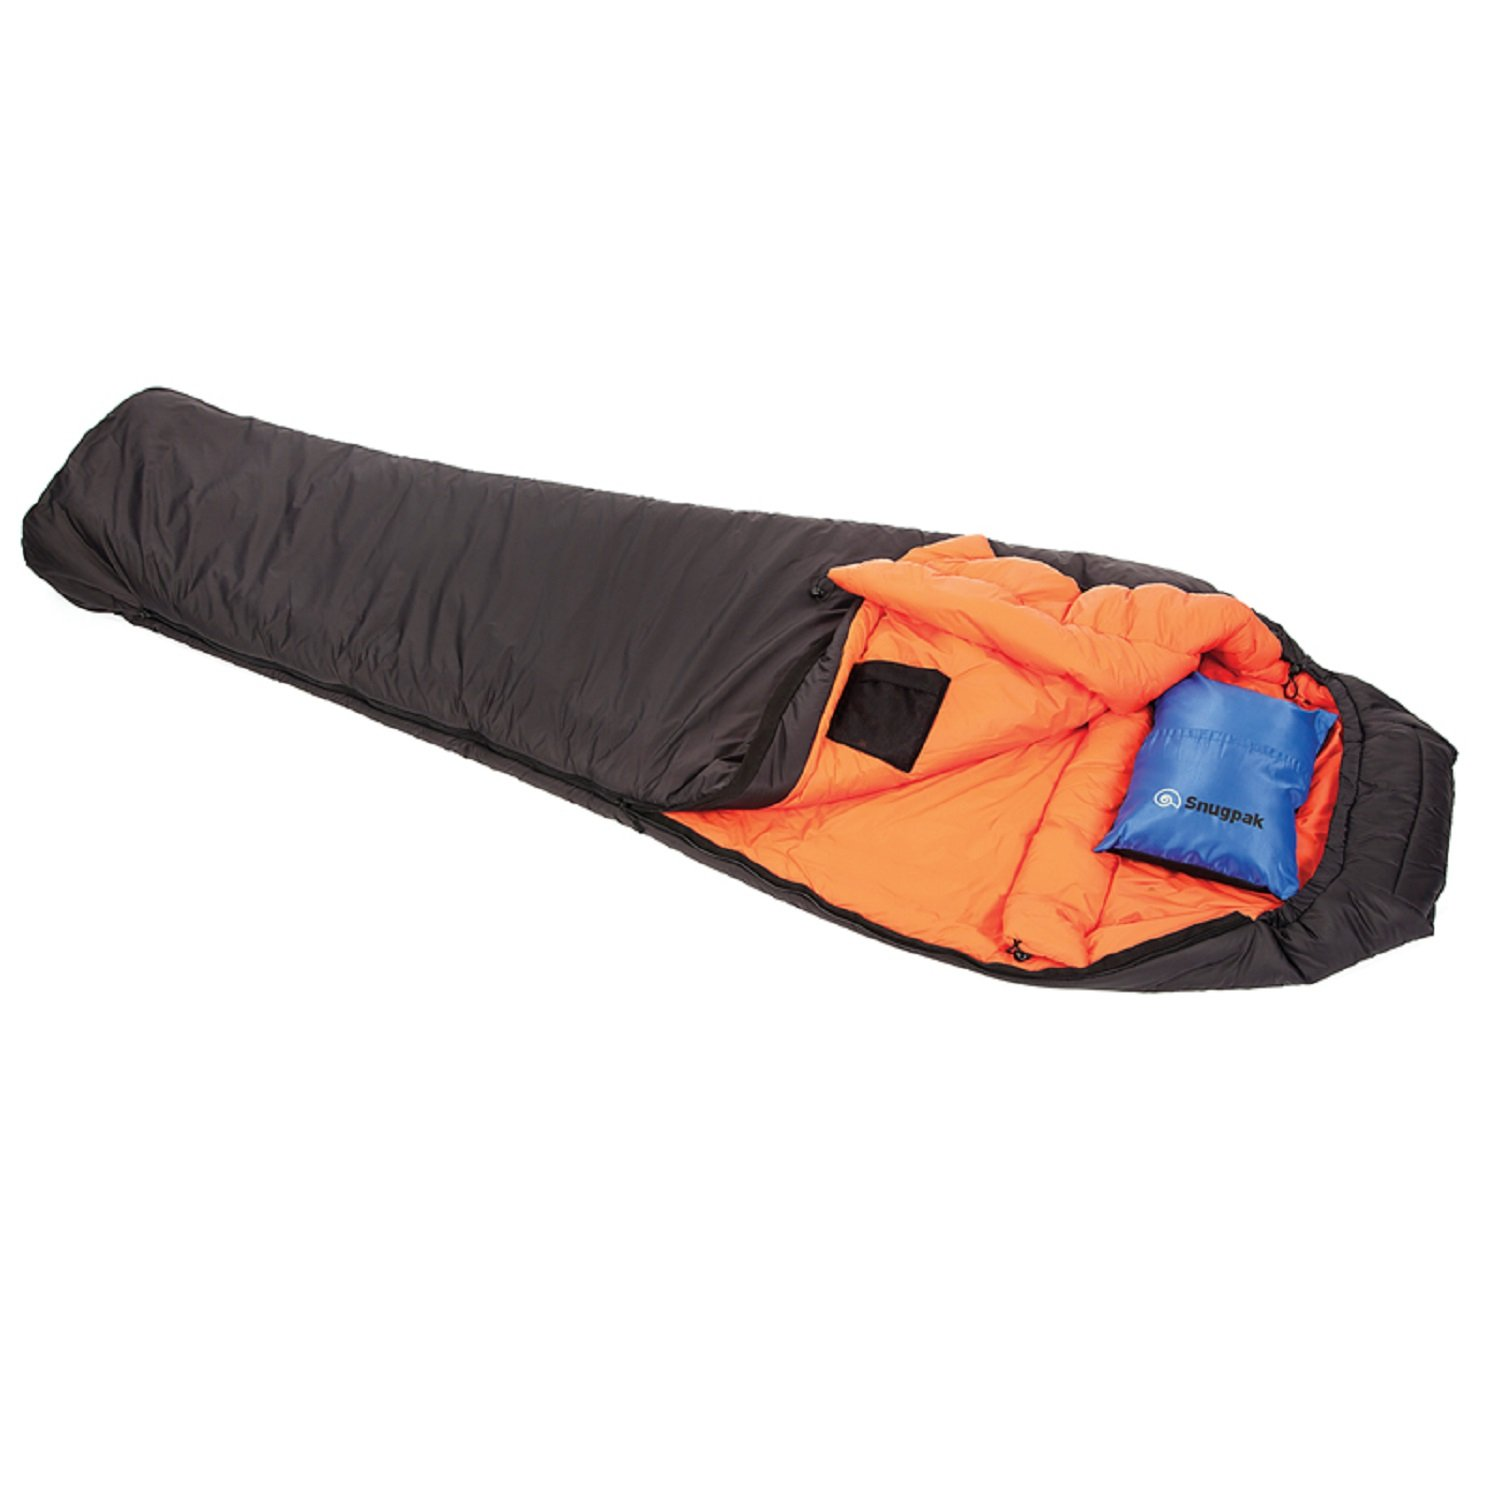 Snugpak Sleeping Bag Softie 12 Osprey incl, snuggy cojín: Amazon.es: Deportes y aire libre